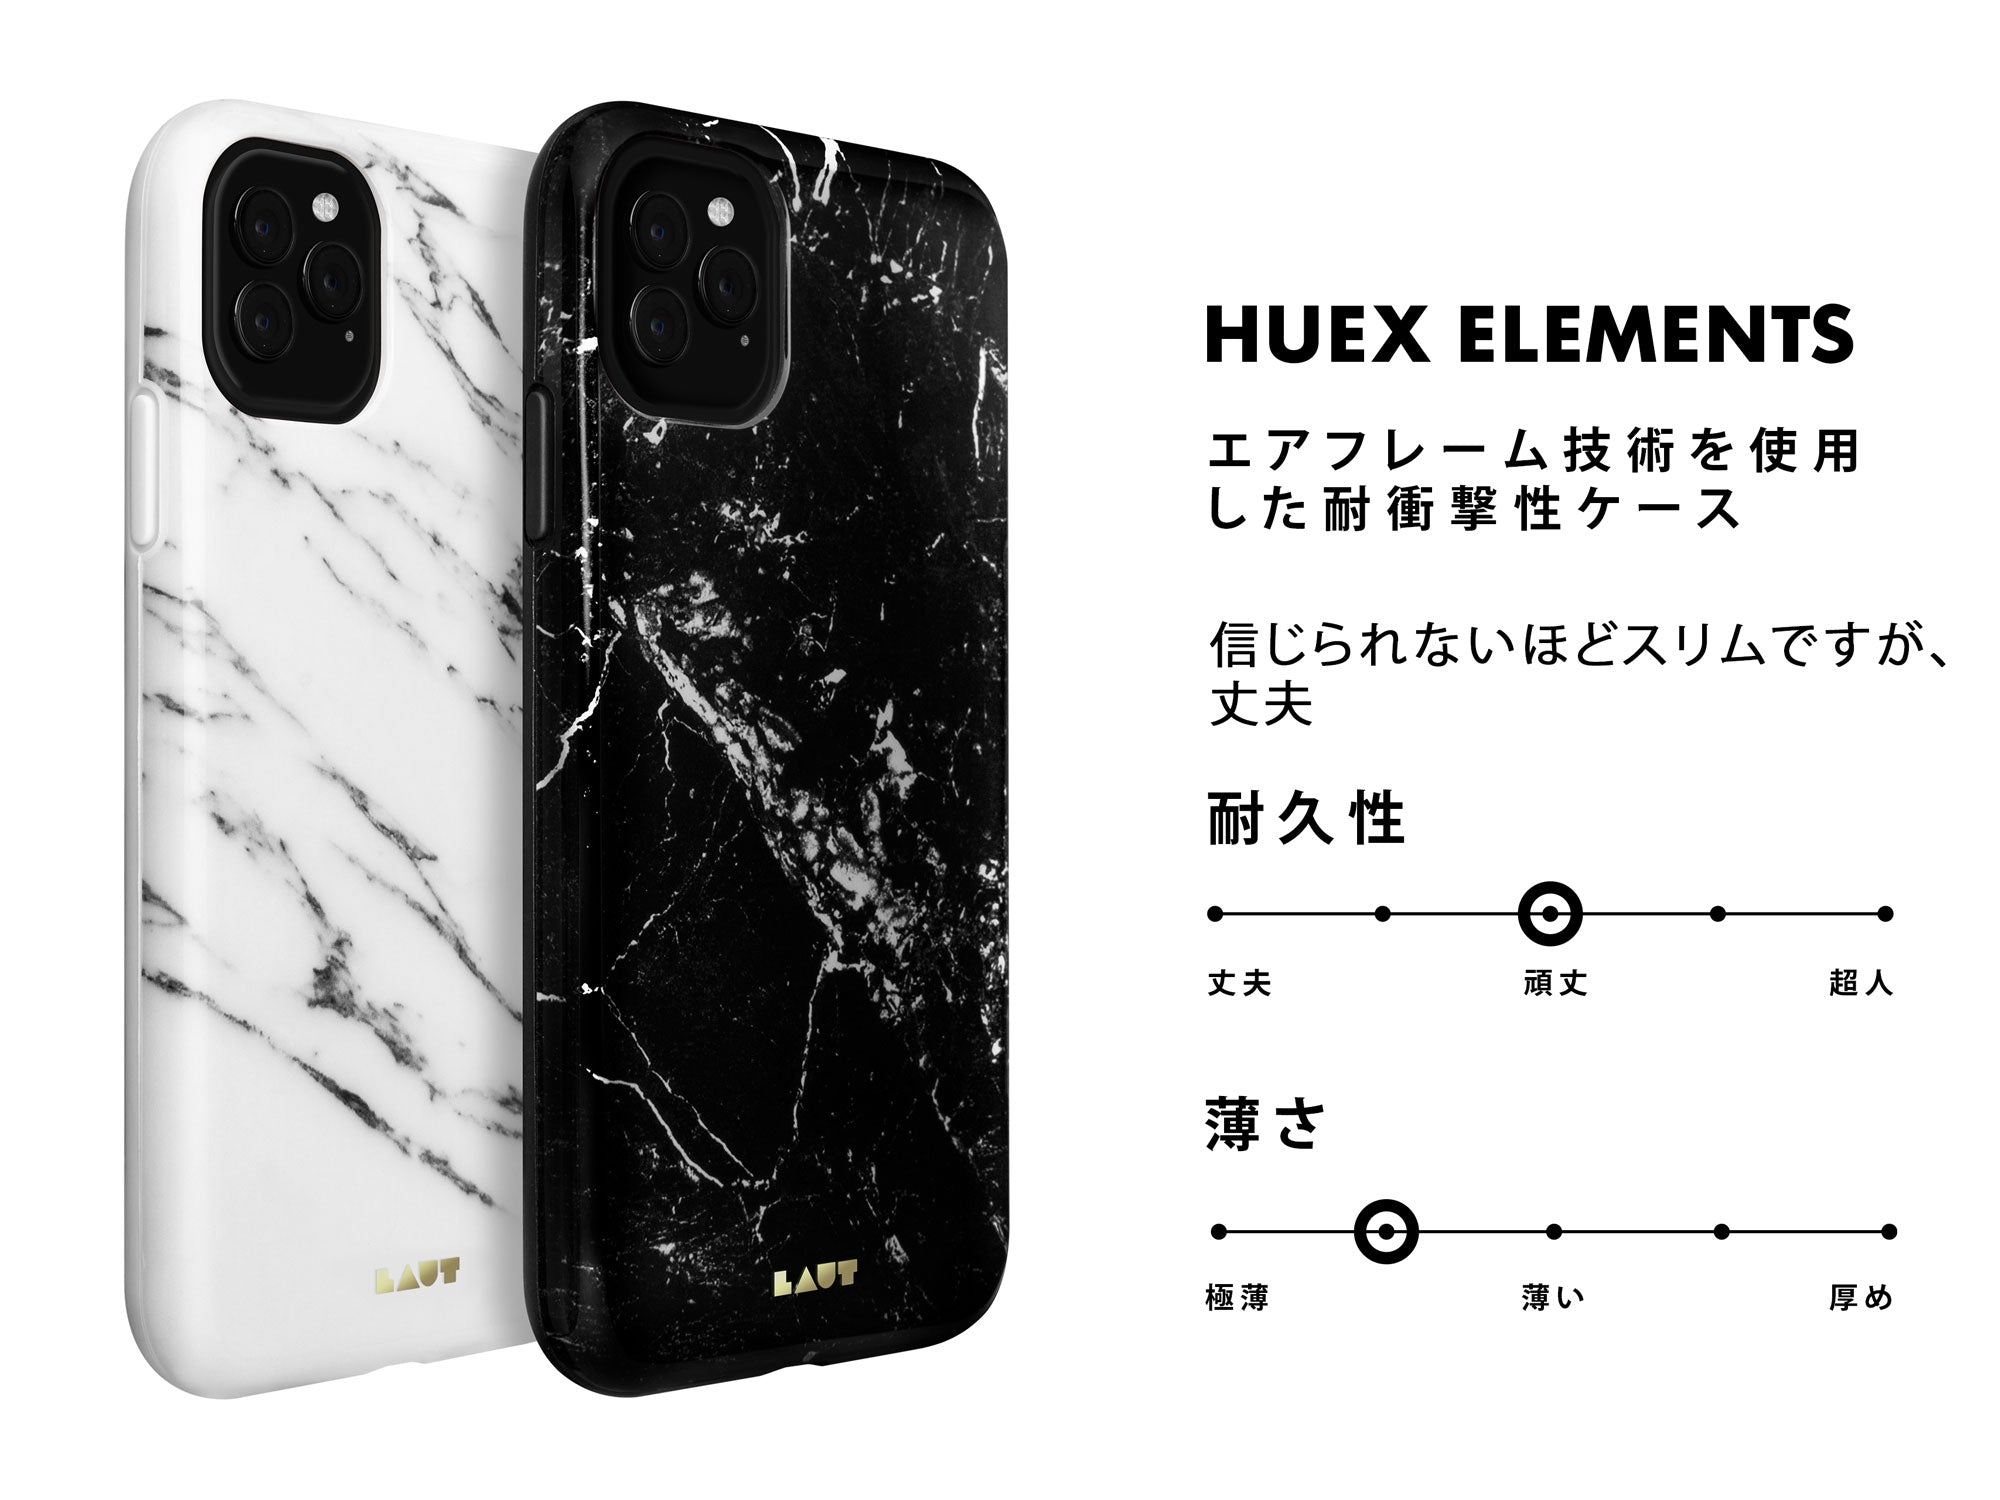 HUEX ELEMENTS for iPhone 11 series